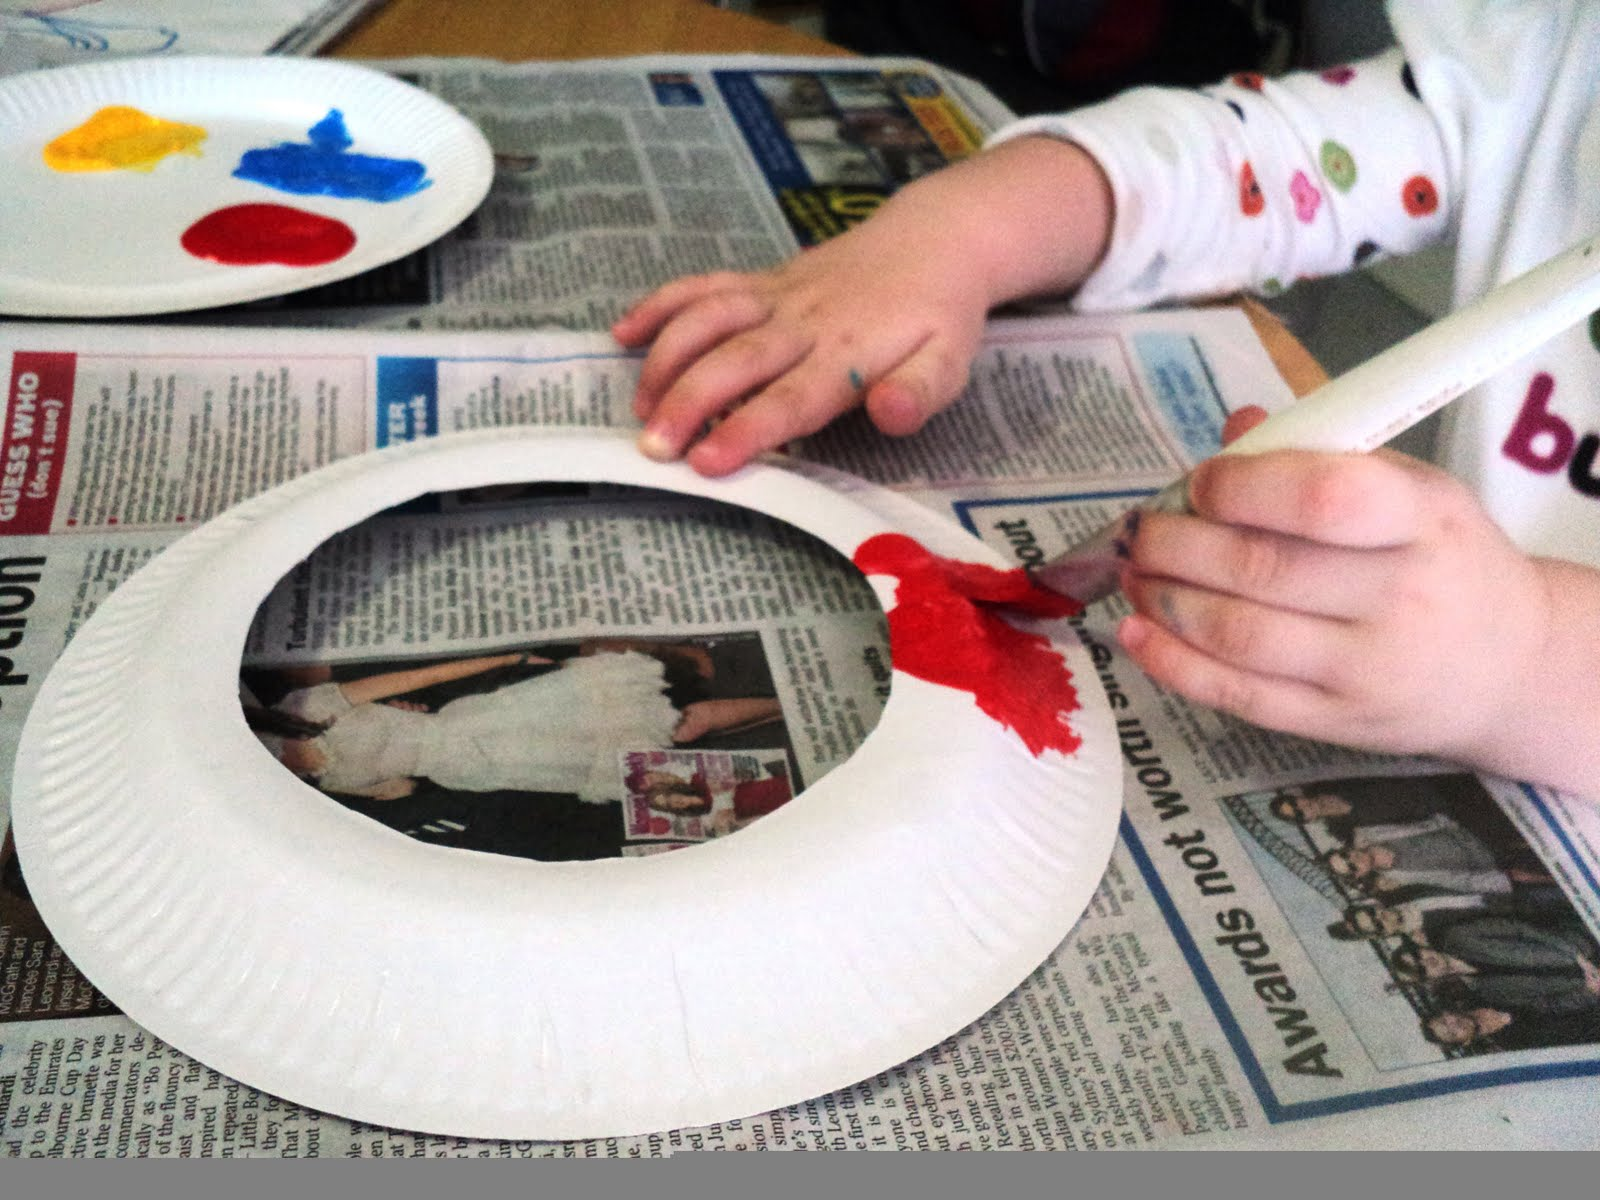 Ring toss games for kids - Paper Plate Ring Toss Game